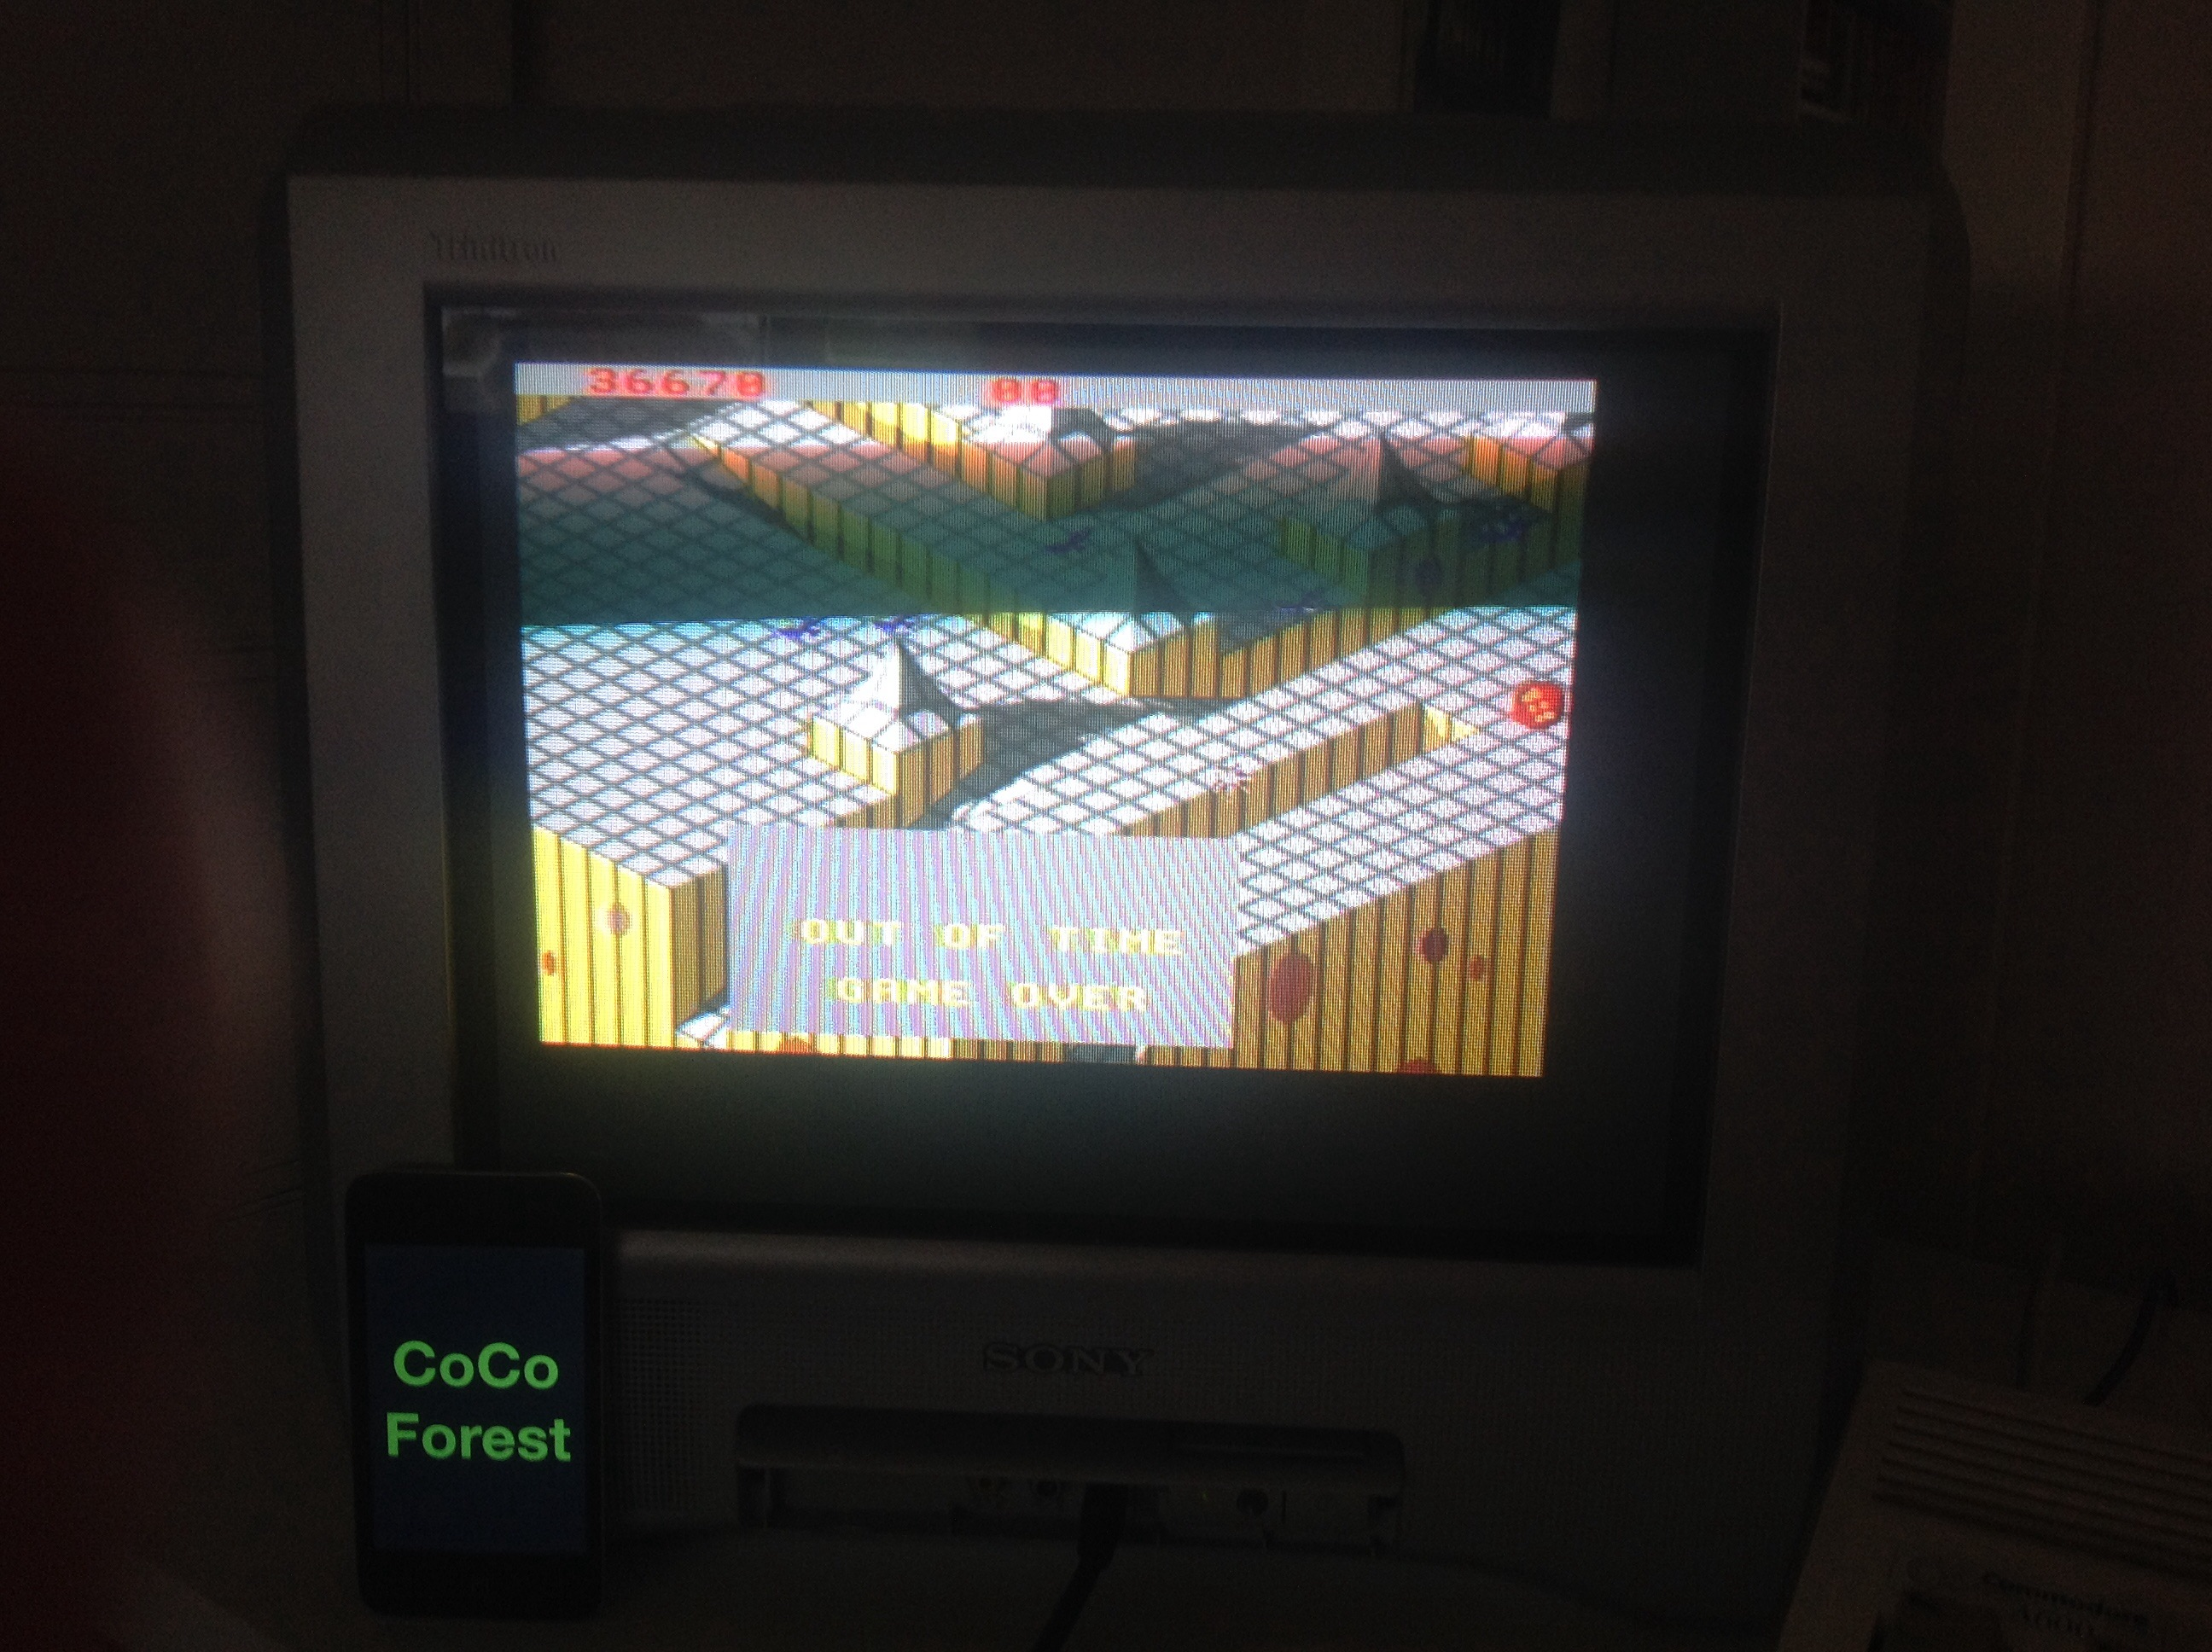 CoCoForest: Marble Madness (Amiga) 36,670 points on 2014-10-09 06:25:29